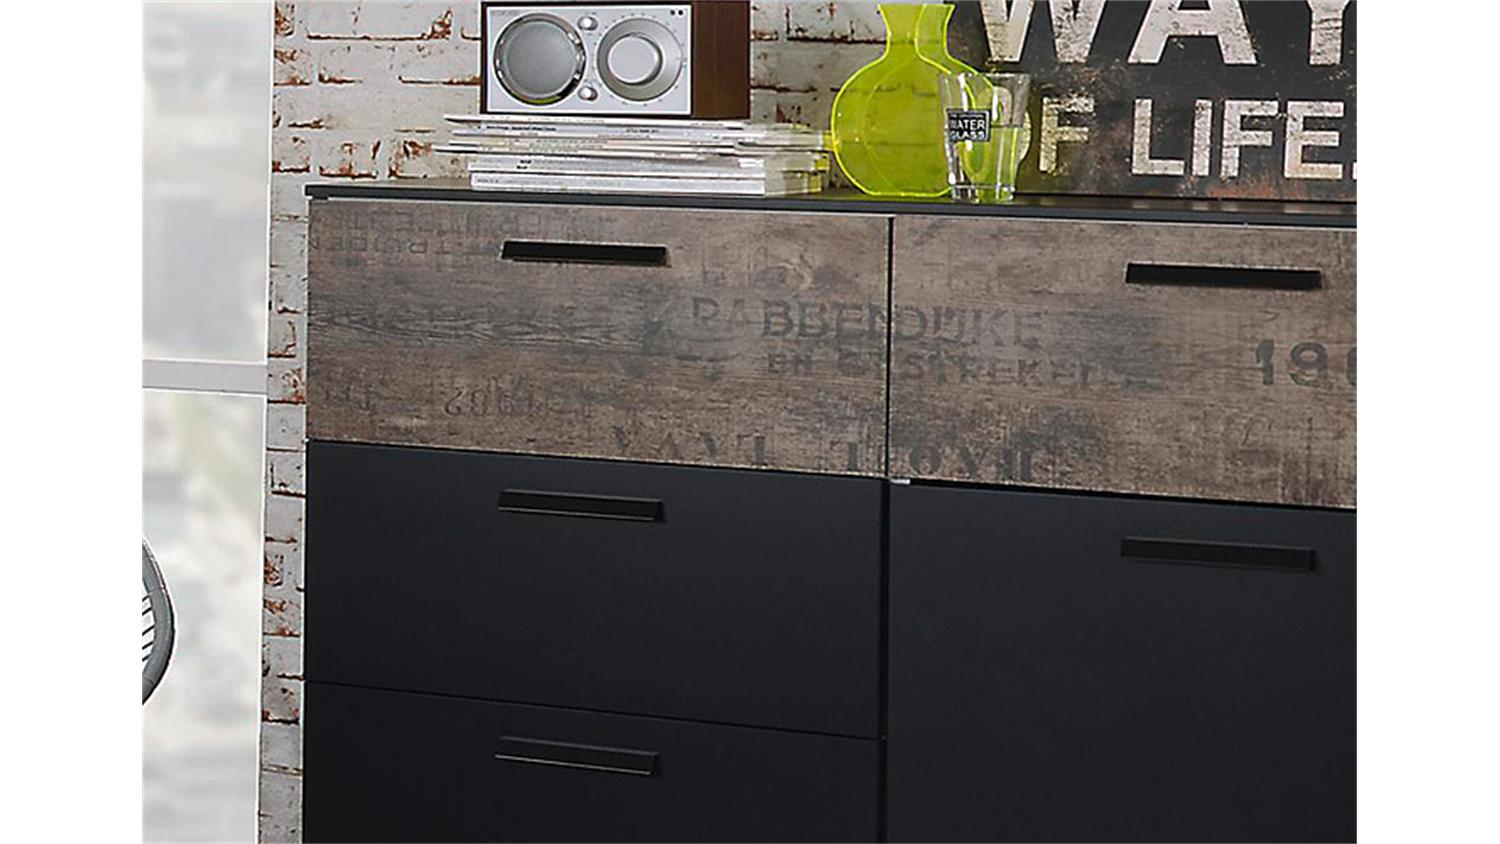 kommode sumatra sideboard vintage in schwarz und braun. Black Bedroom Furniture Sets. Home Design Ideas